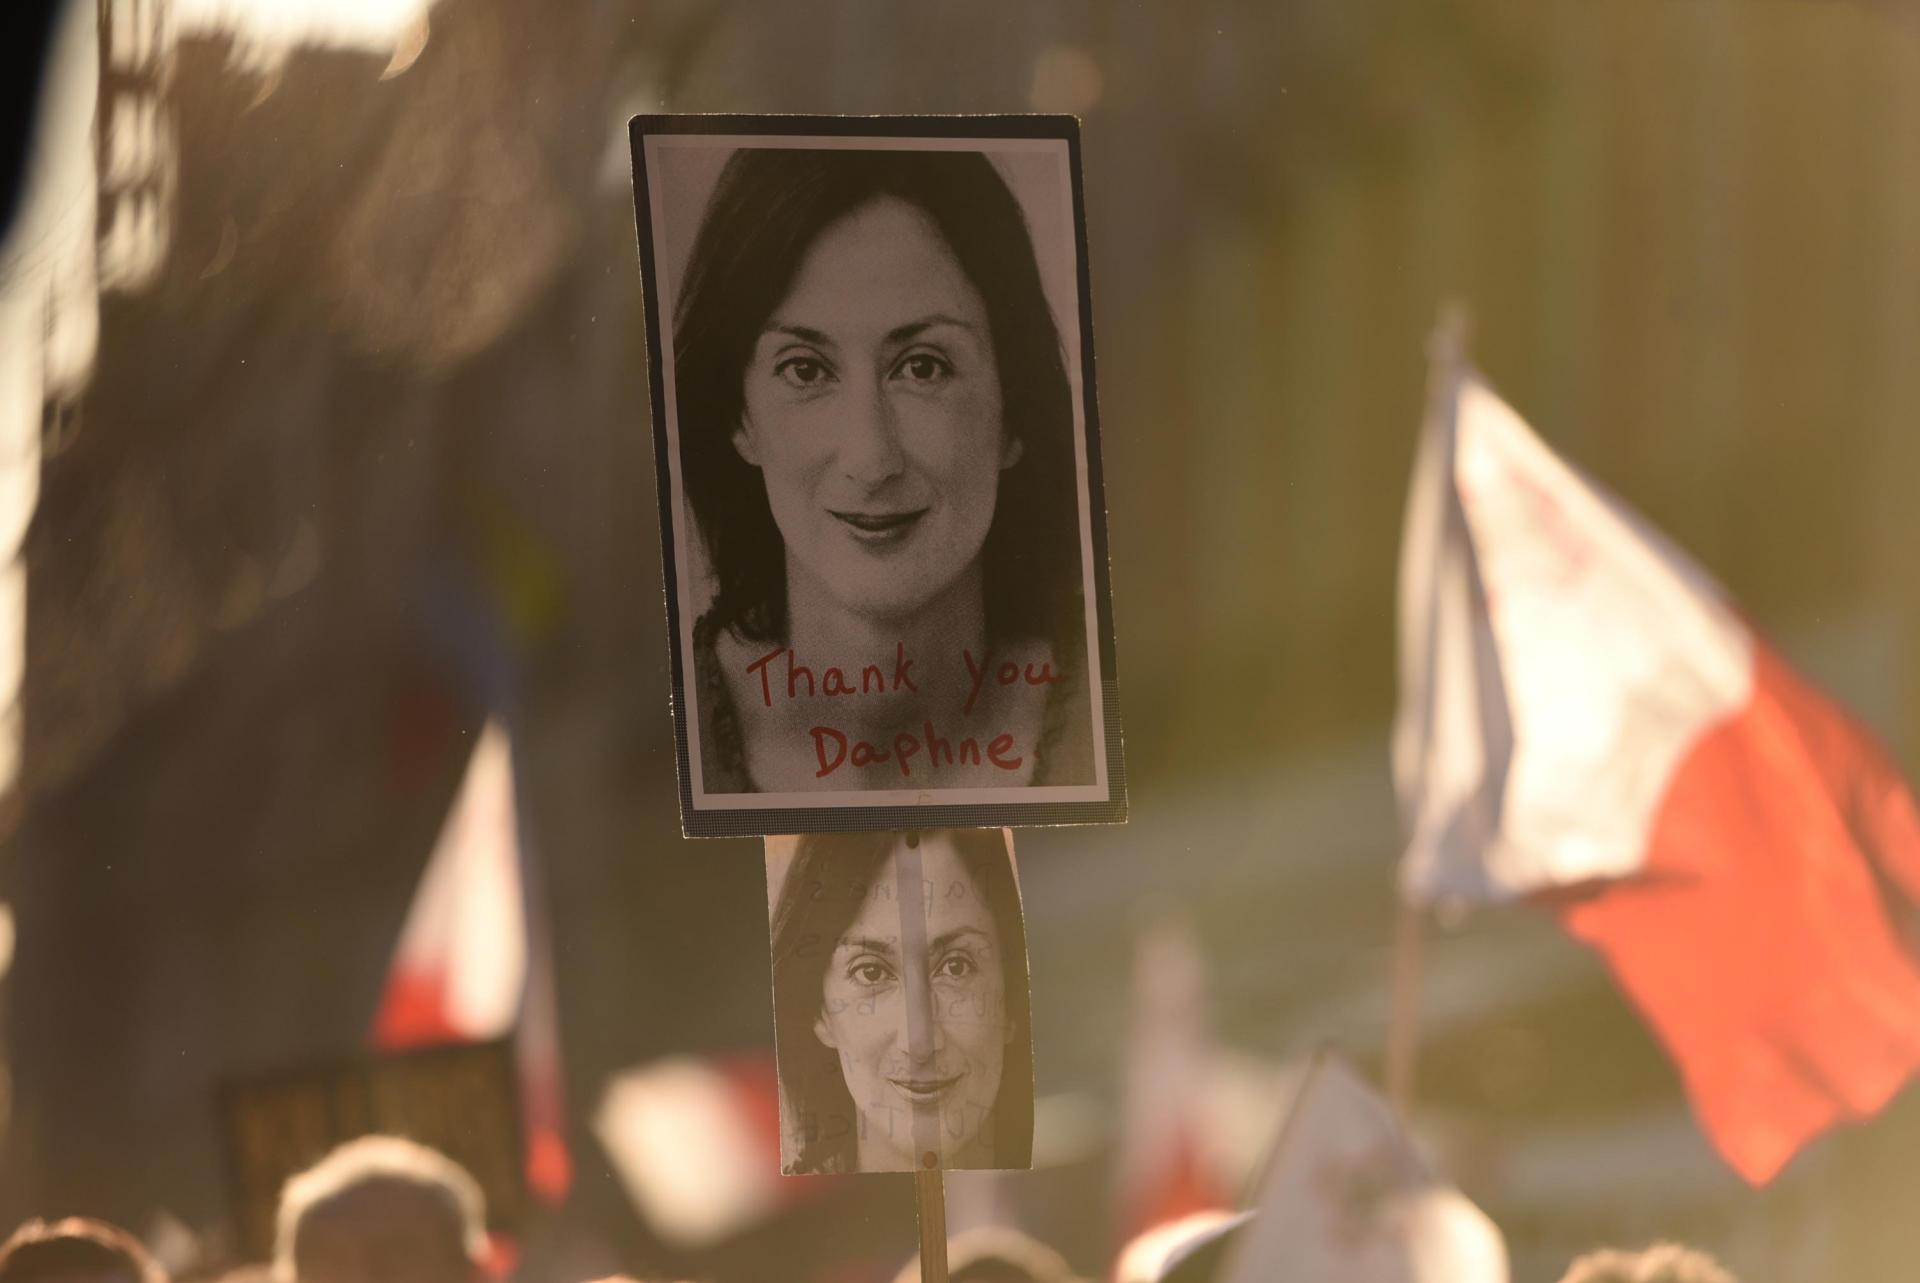 A banner thanking Daphne Caruana Galizia is held by a participant in a vigil commemorating her death.